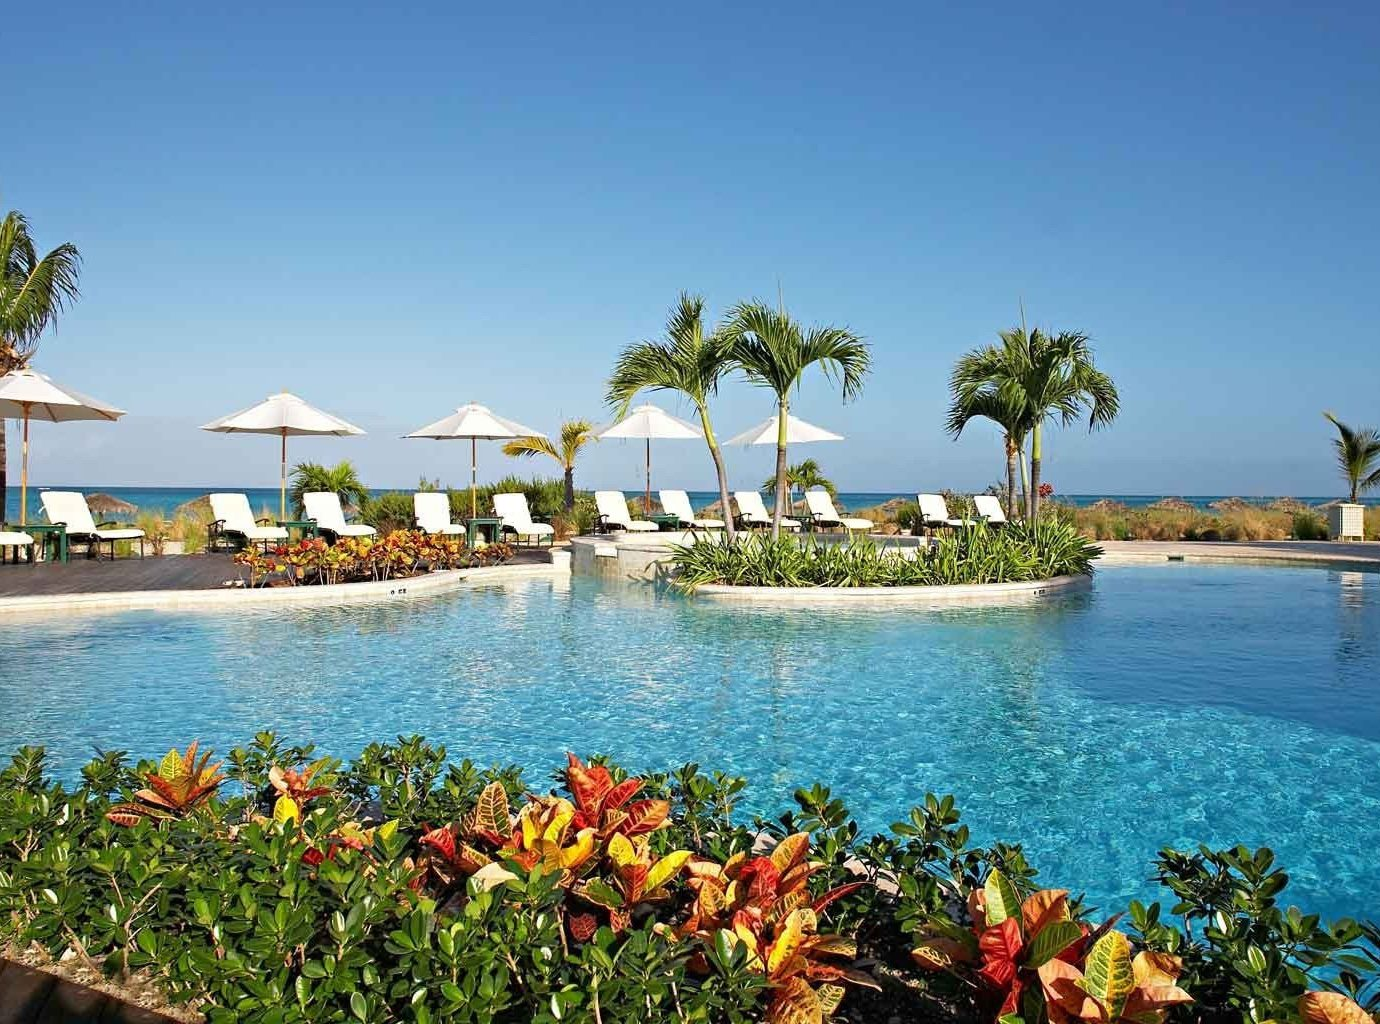 Trip Ideas water outdoor sky umbrella leisure Resort vacation swimming pool Nature tourism caribbean estate bay Sea Beach Lagoon arecales lawn Island shore lined swimming